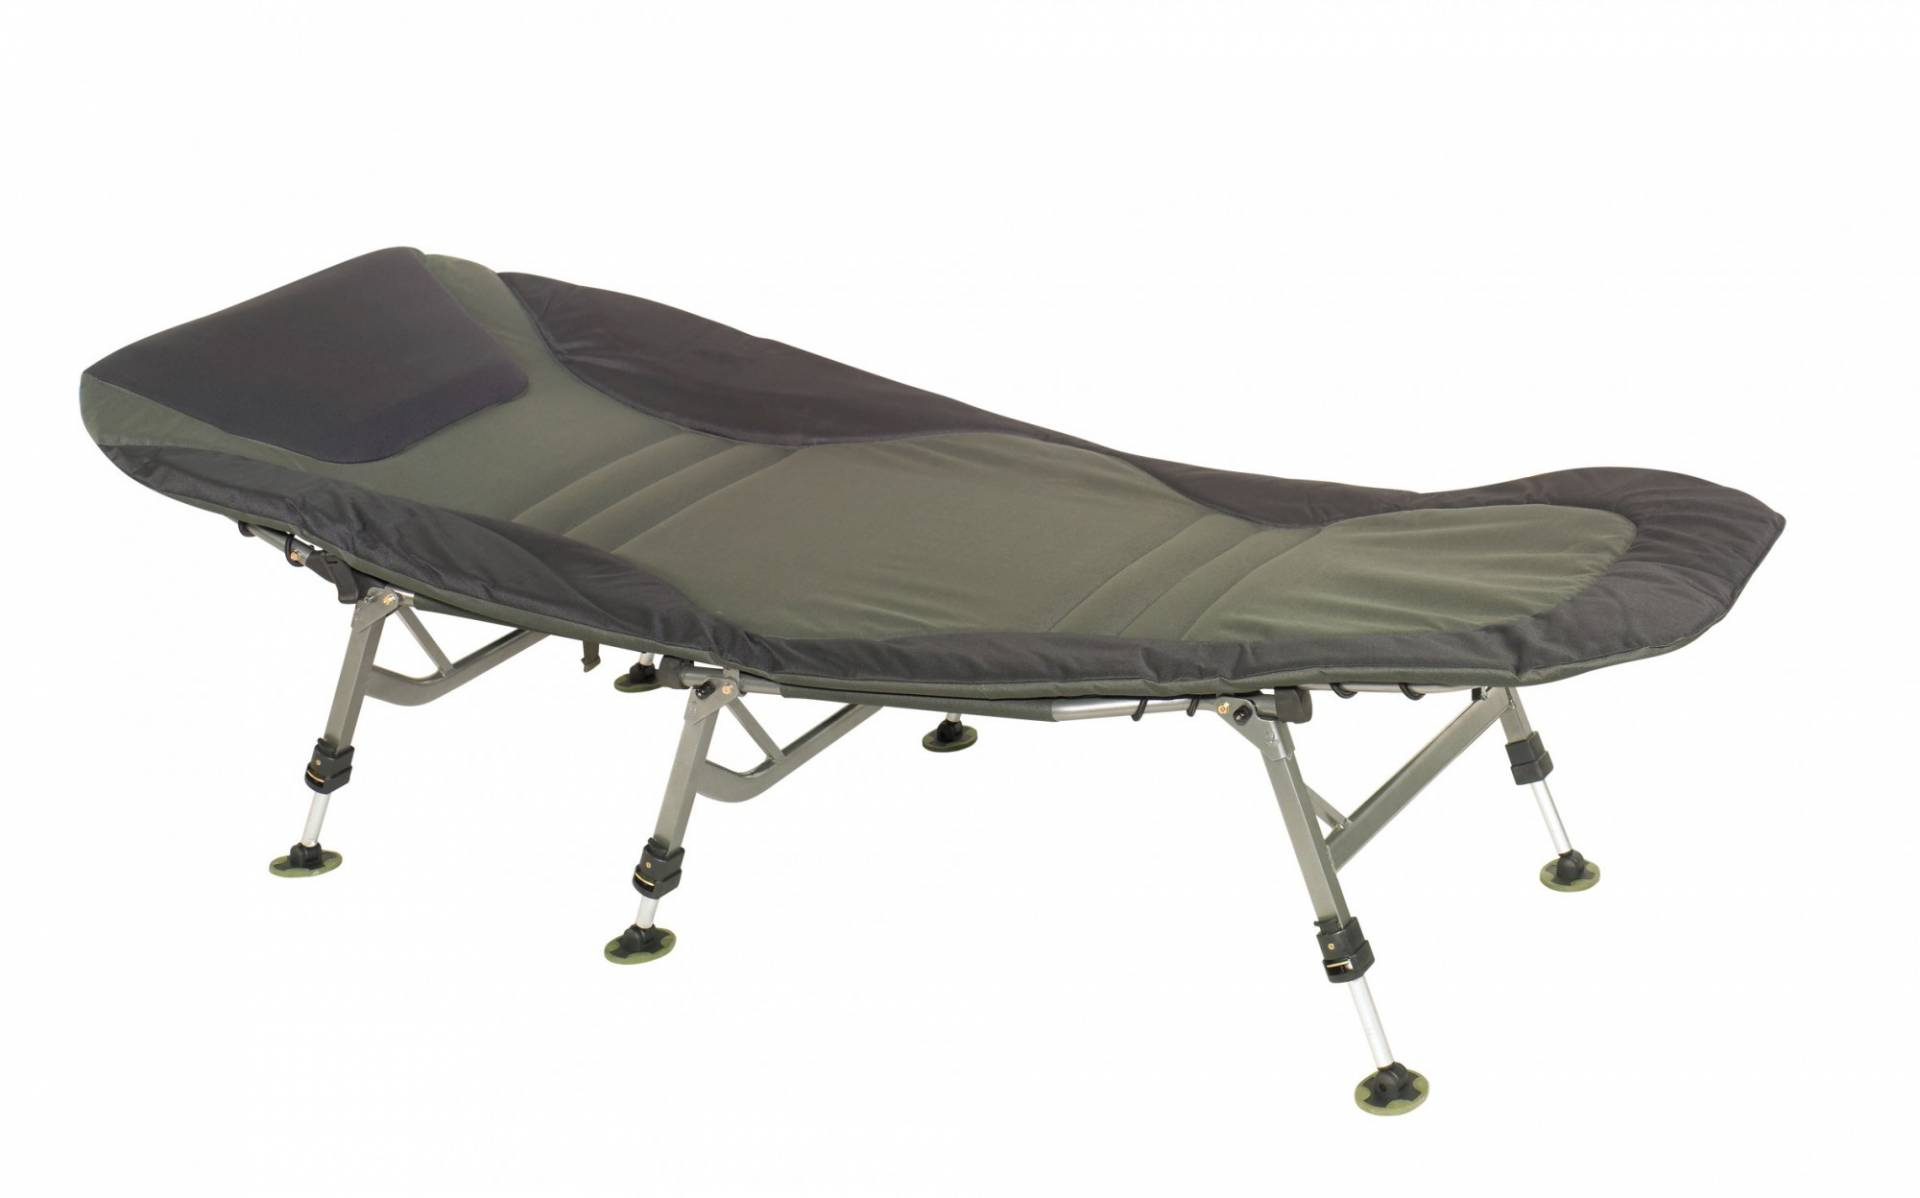 ANACONDA Vi Lock Bed Chair Angelliege Karpfenliege Liege von Anaconda